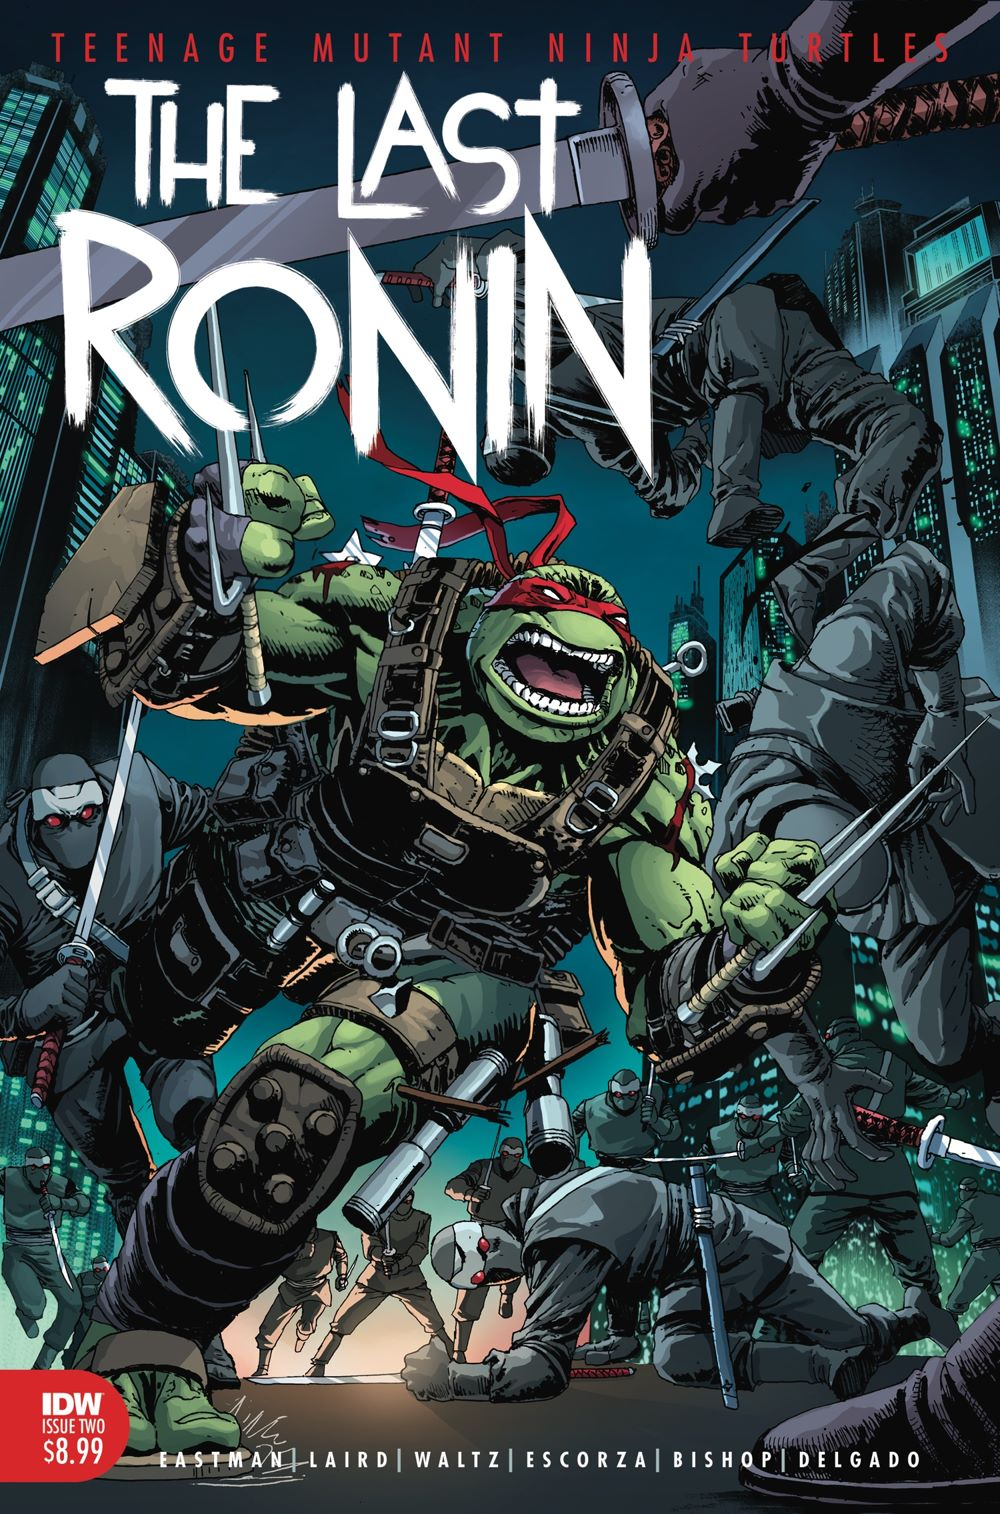 42f955bd-be07-4ee9-8f91-cde7c3b2e7c5 TEENAGE MUTANT NINJA TURTLES THE LAST RONIN #2 returns with 2nd printing